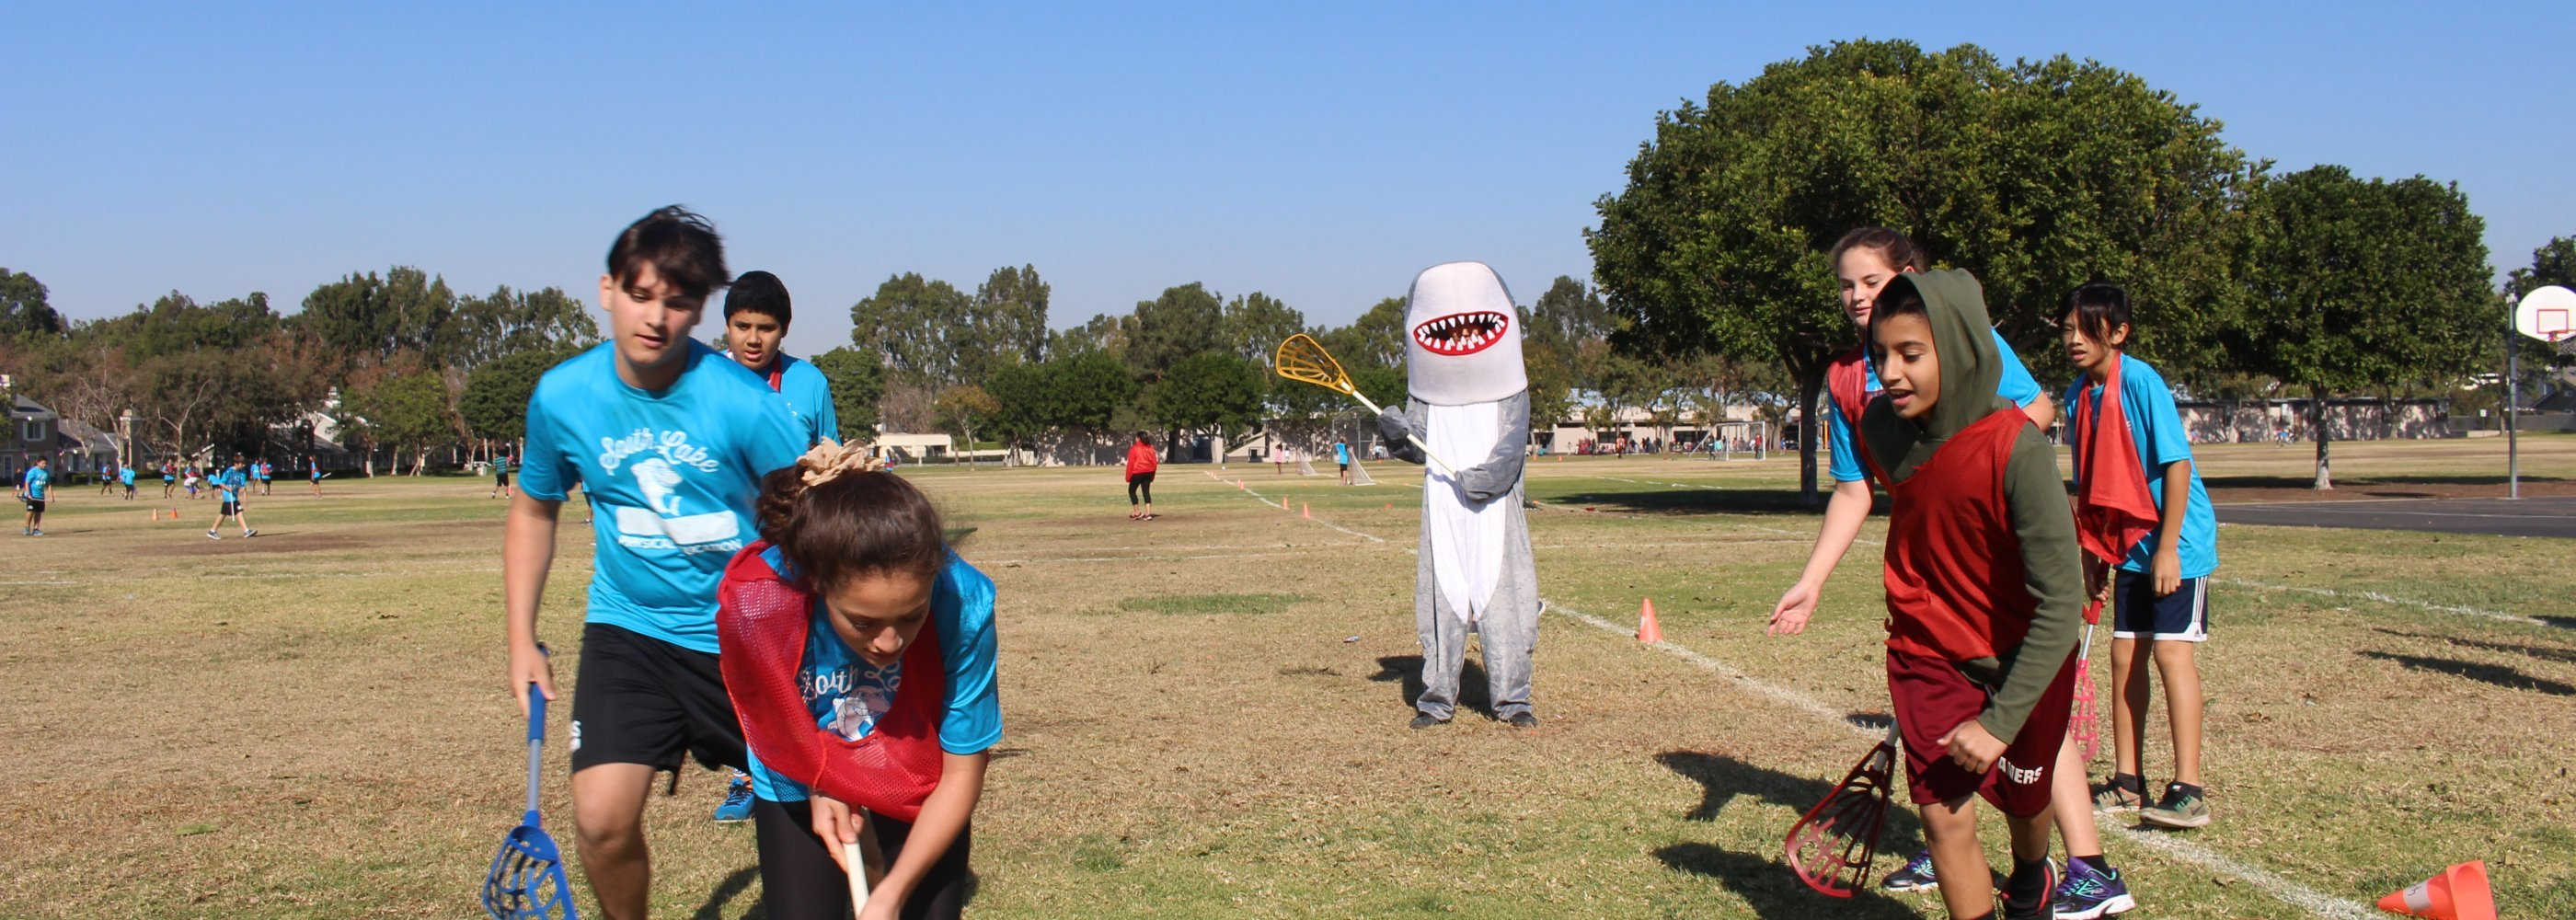 mascot playing on field with students